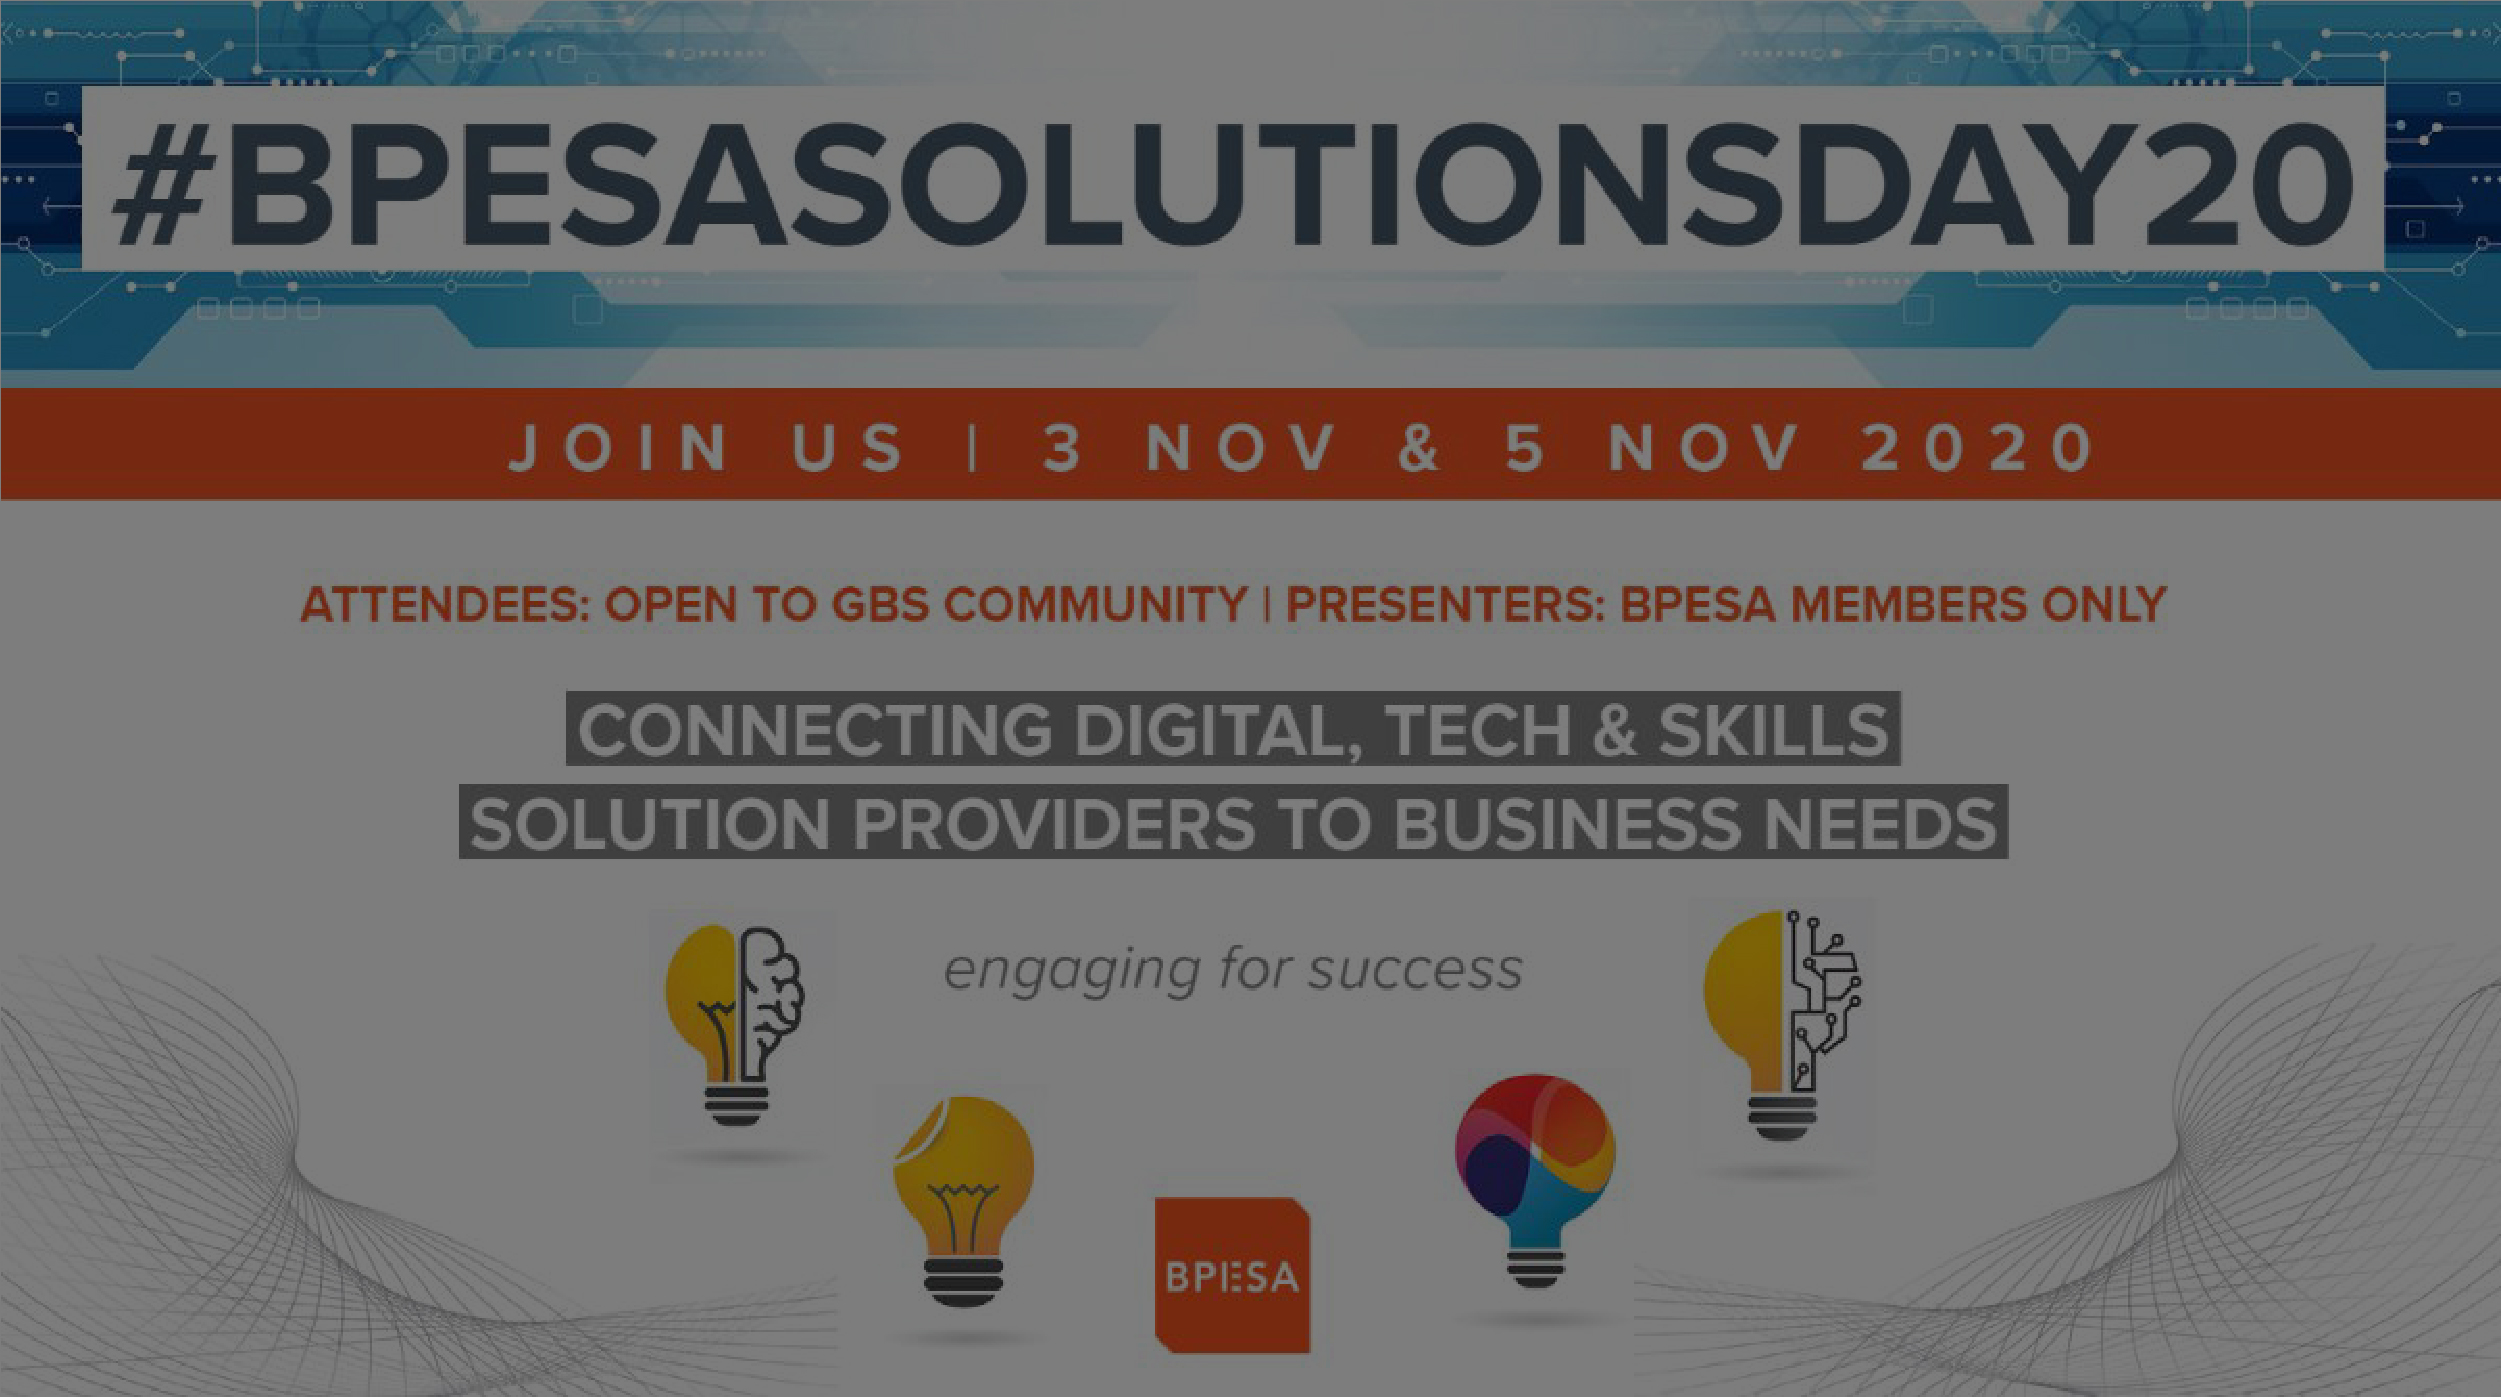 BPESA SOLUTIONS DAY 20 open for Registration